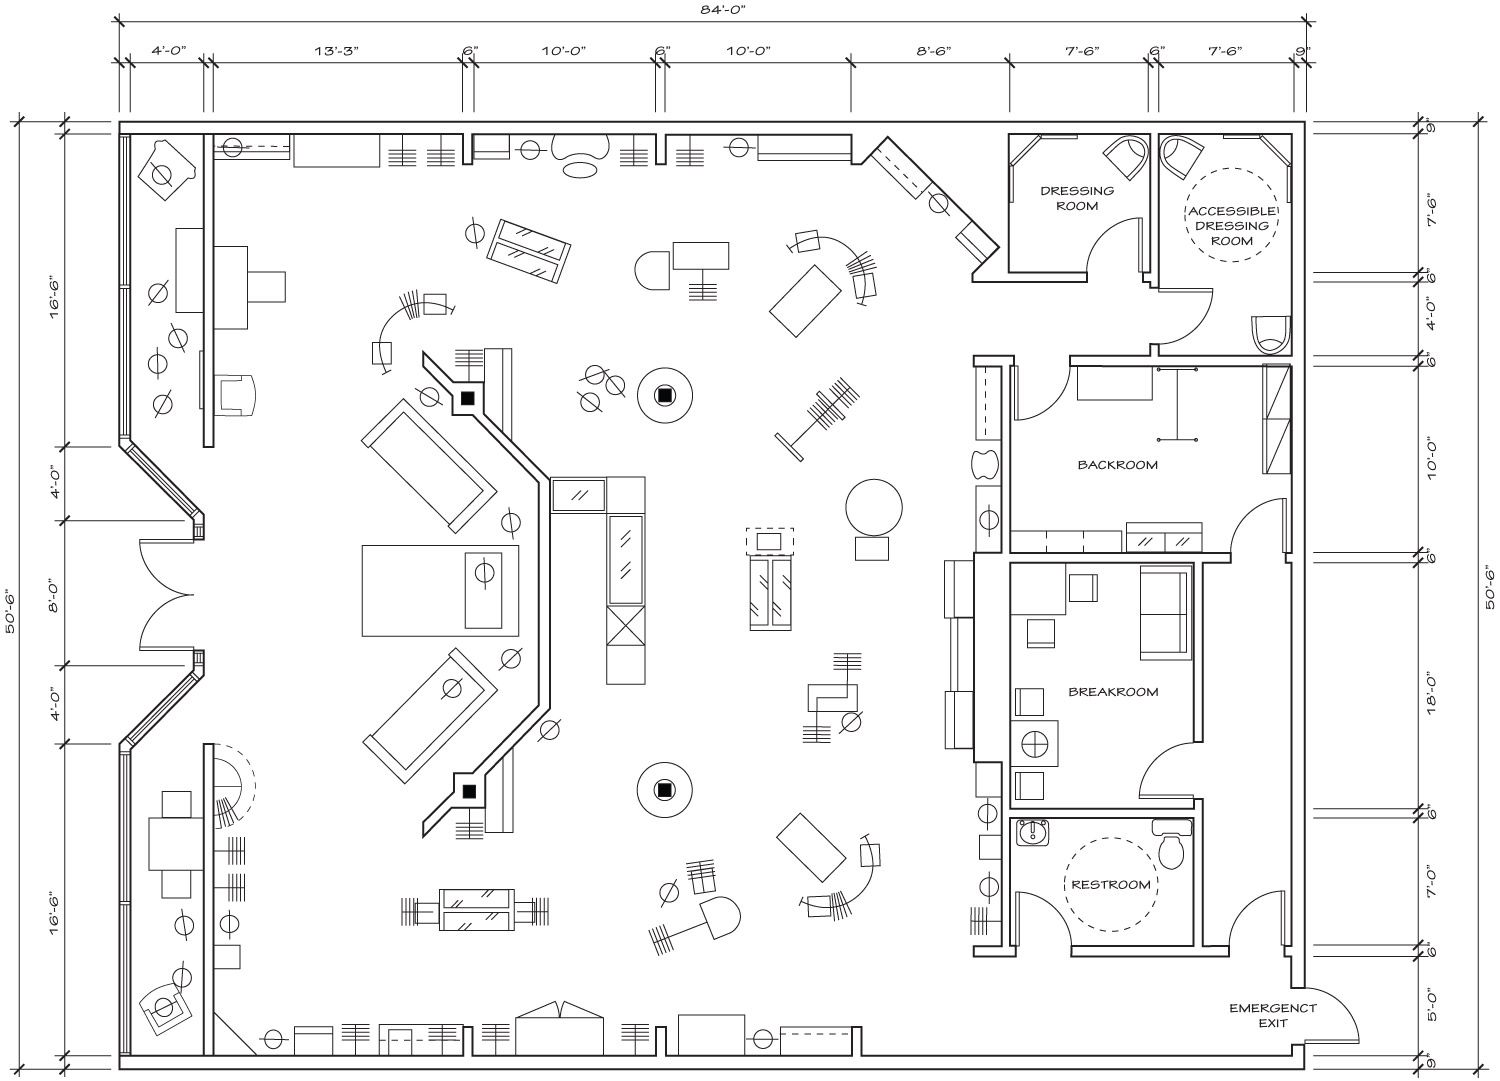 Retail Floor Plan Google Search Basic House Young Casual Brand Pinterest